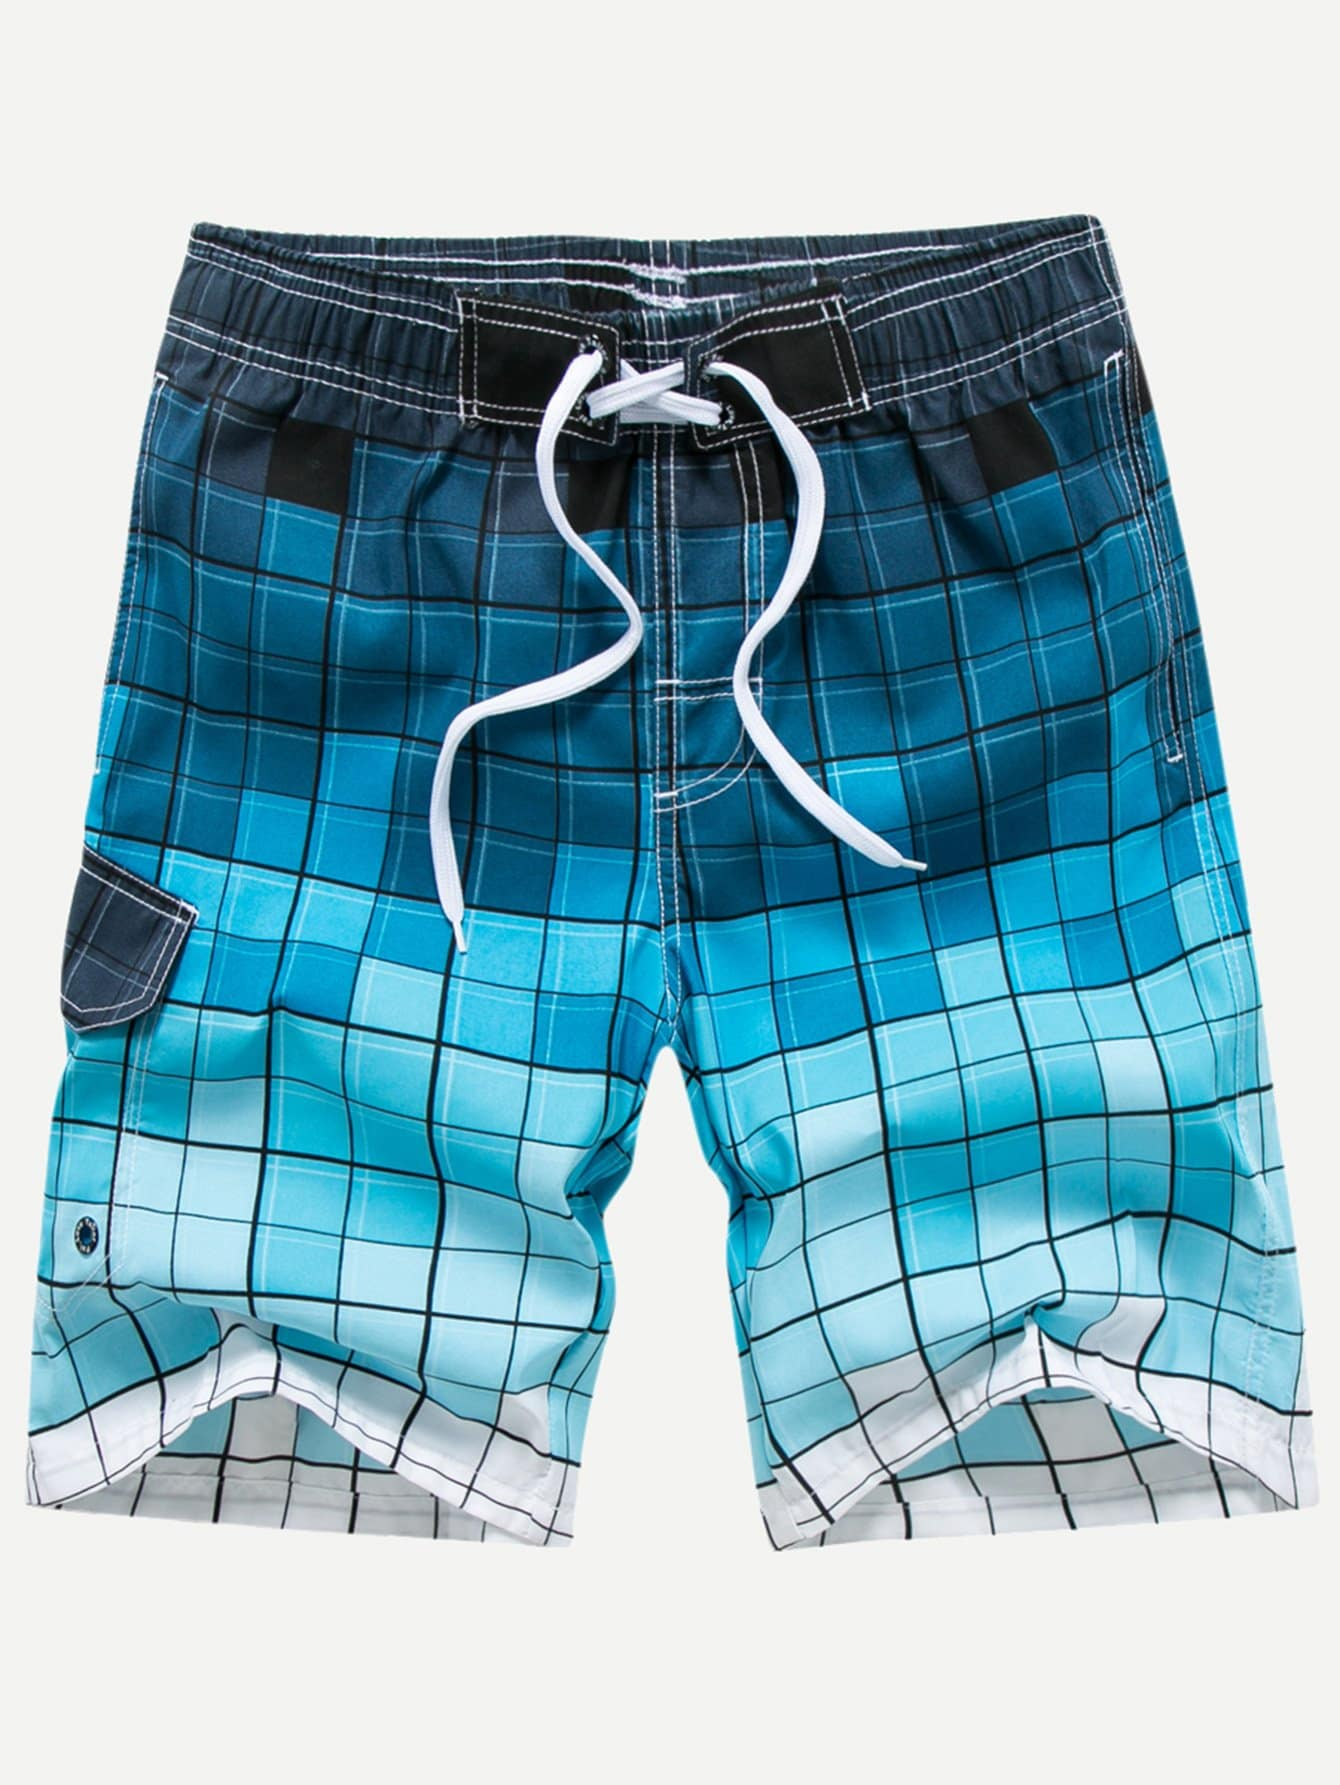 Men Drawstring Colorful Plaid Beach Shorts